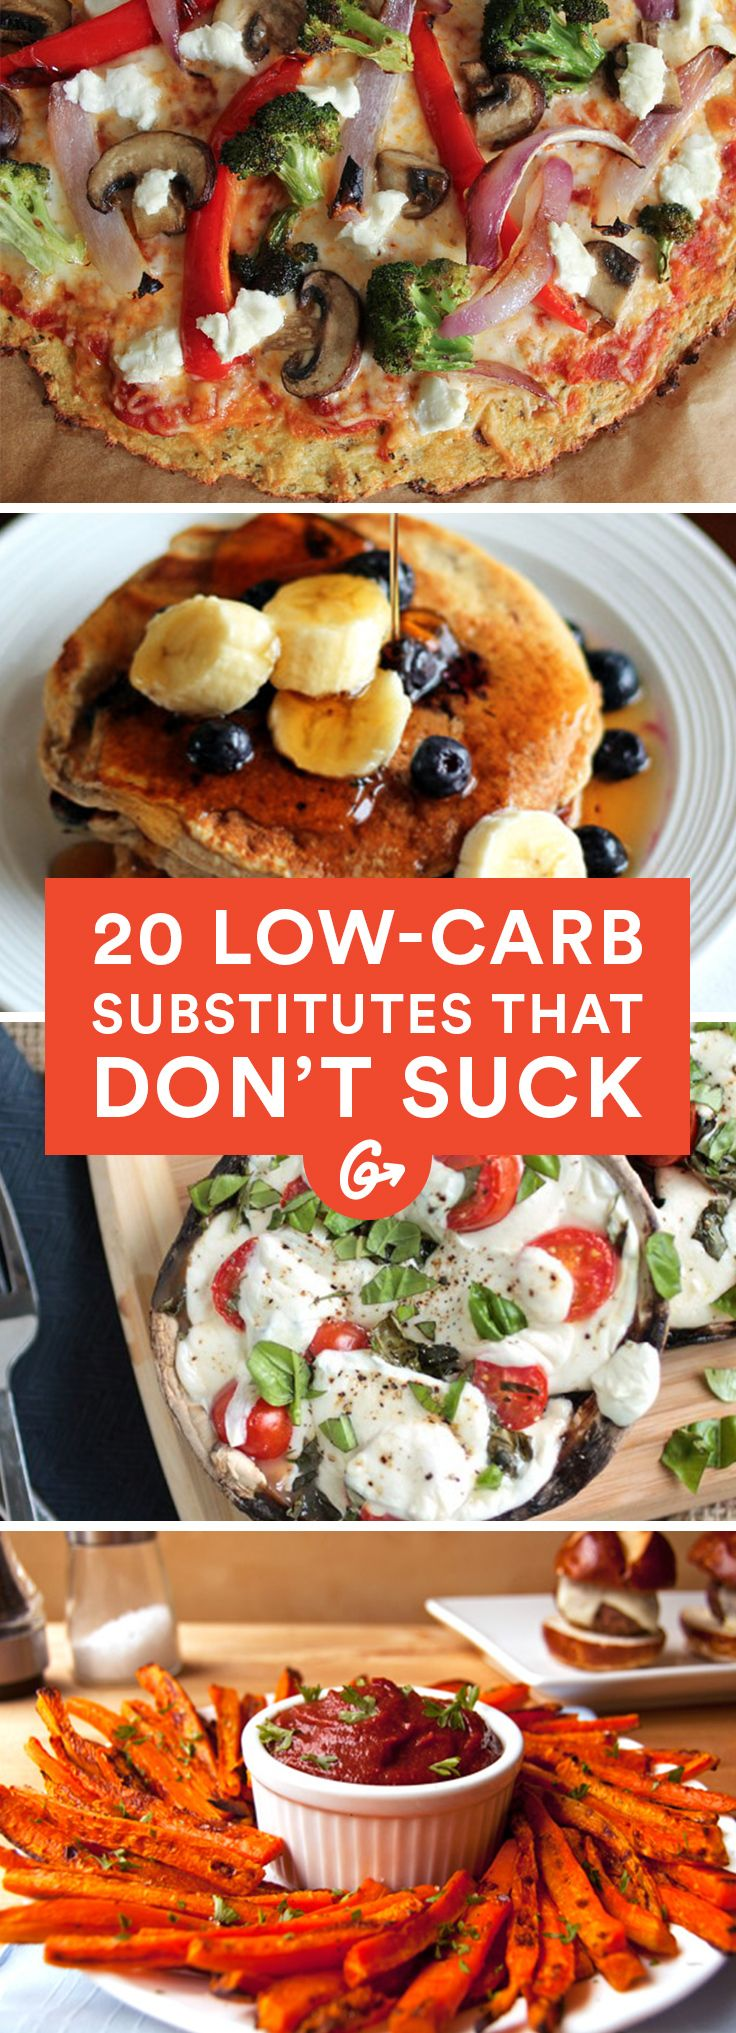 20 Low-Carb Substitutes That Don't Suck #healthy #lowcarb #recipes http://greatist.com/health/lower-carb-alternatives